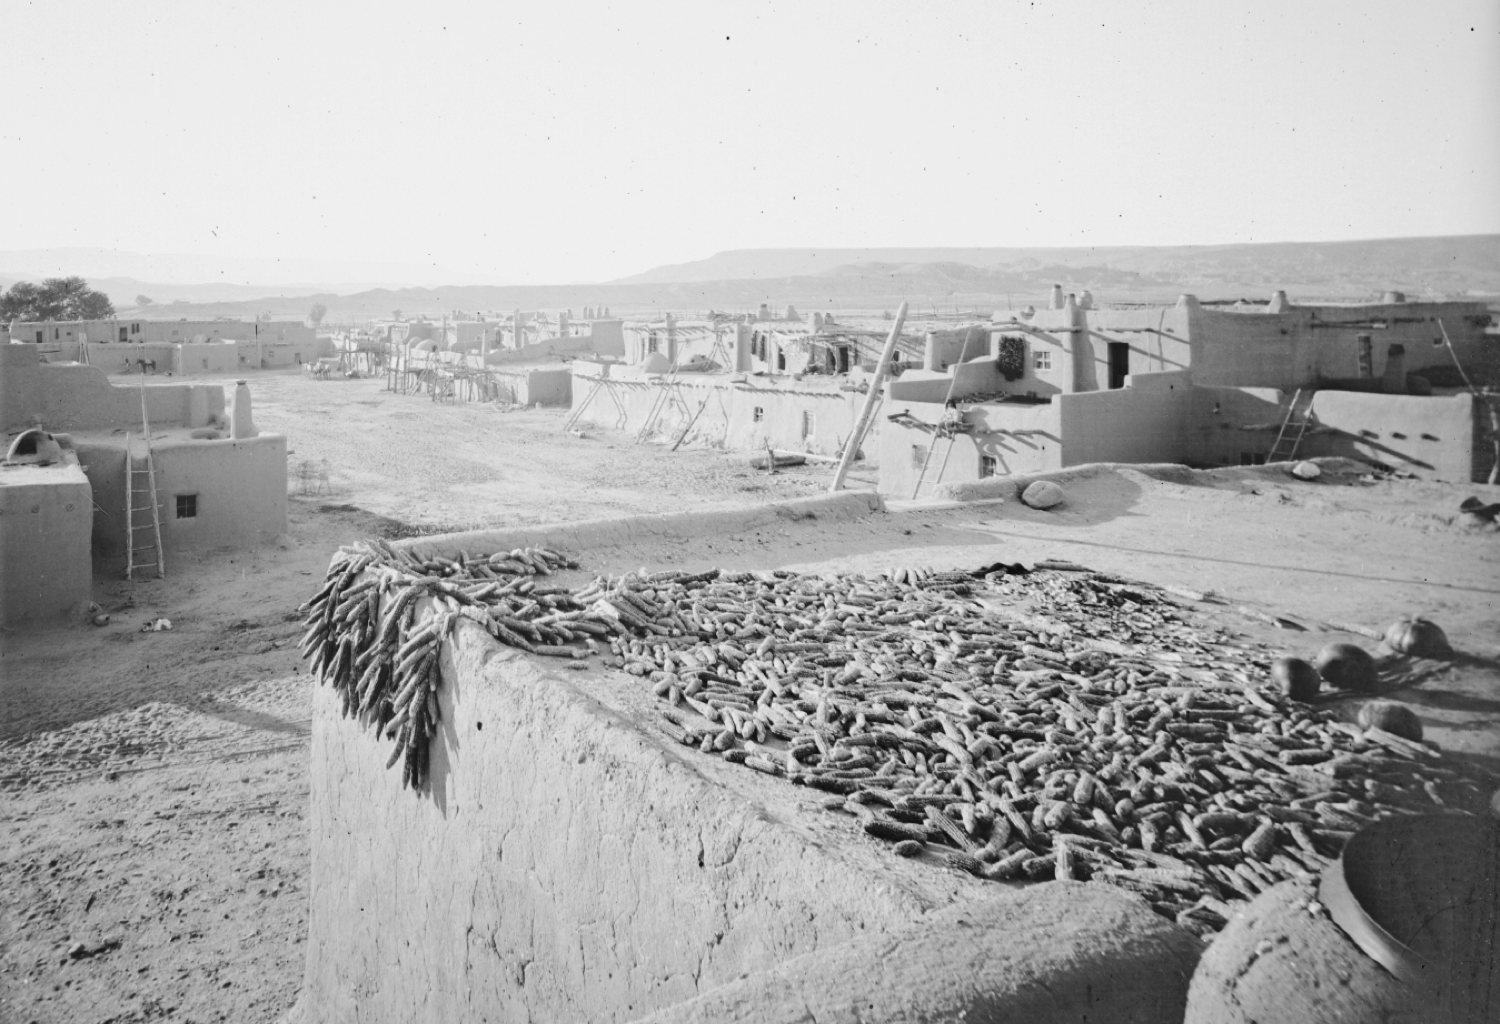 View of Ohkay Owingeh, then known as San Juan Pueblo, in 1877